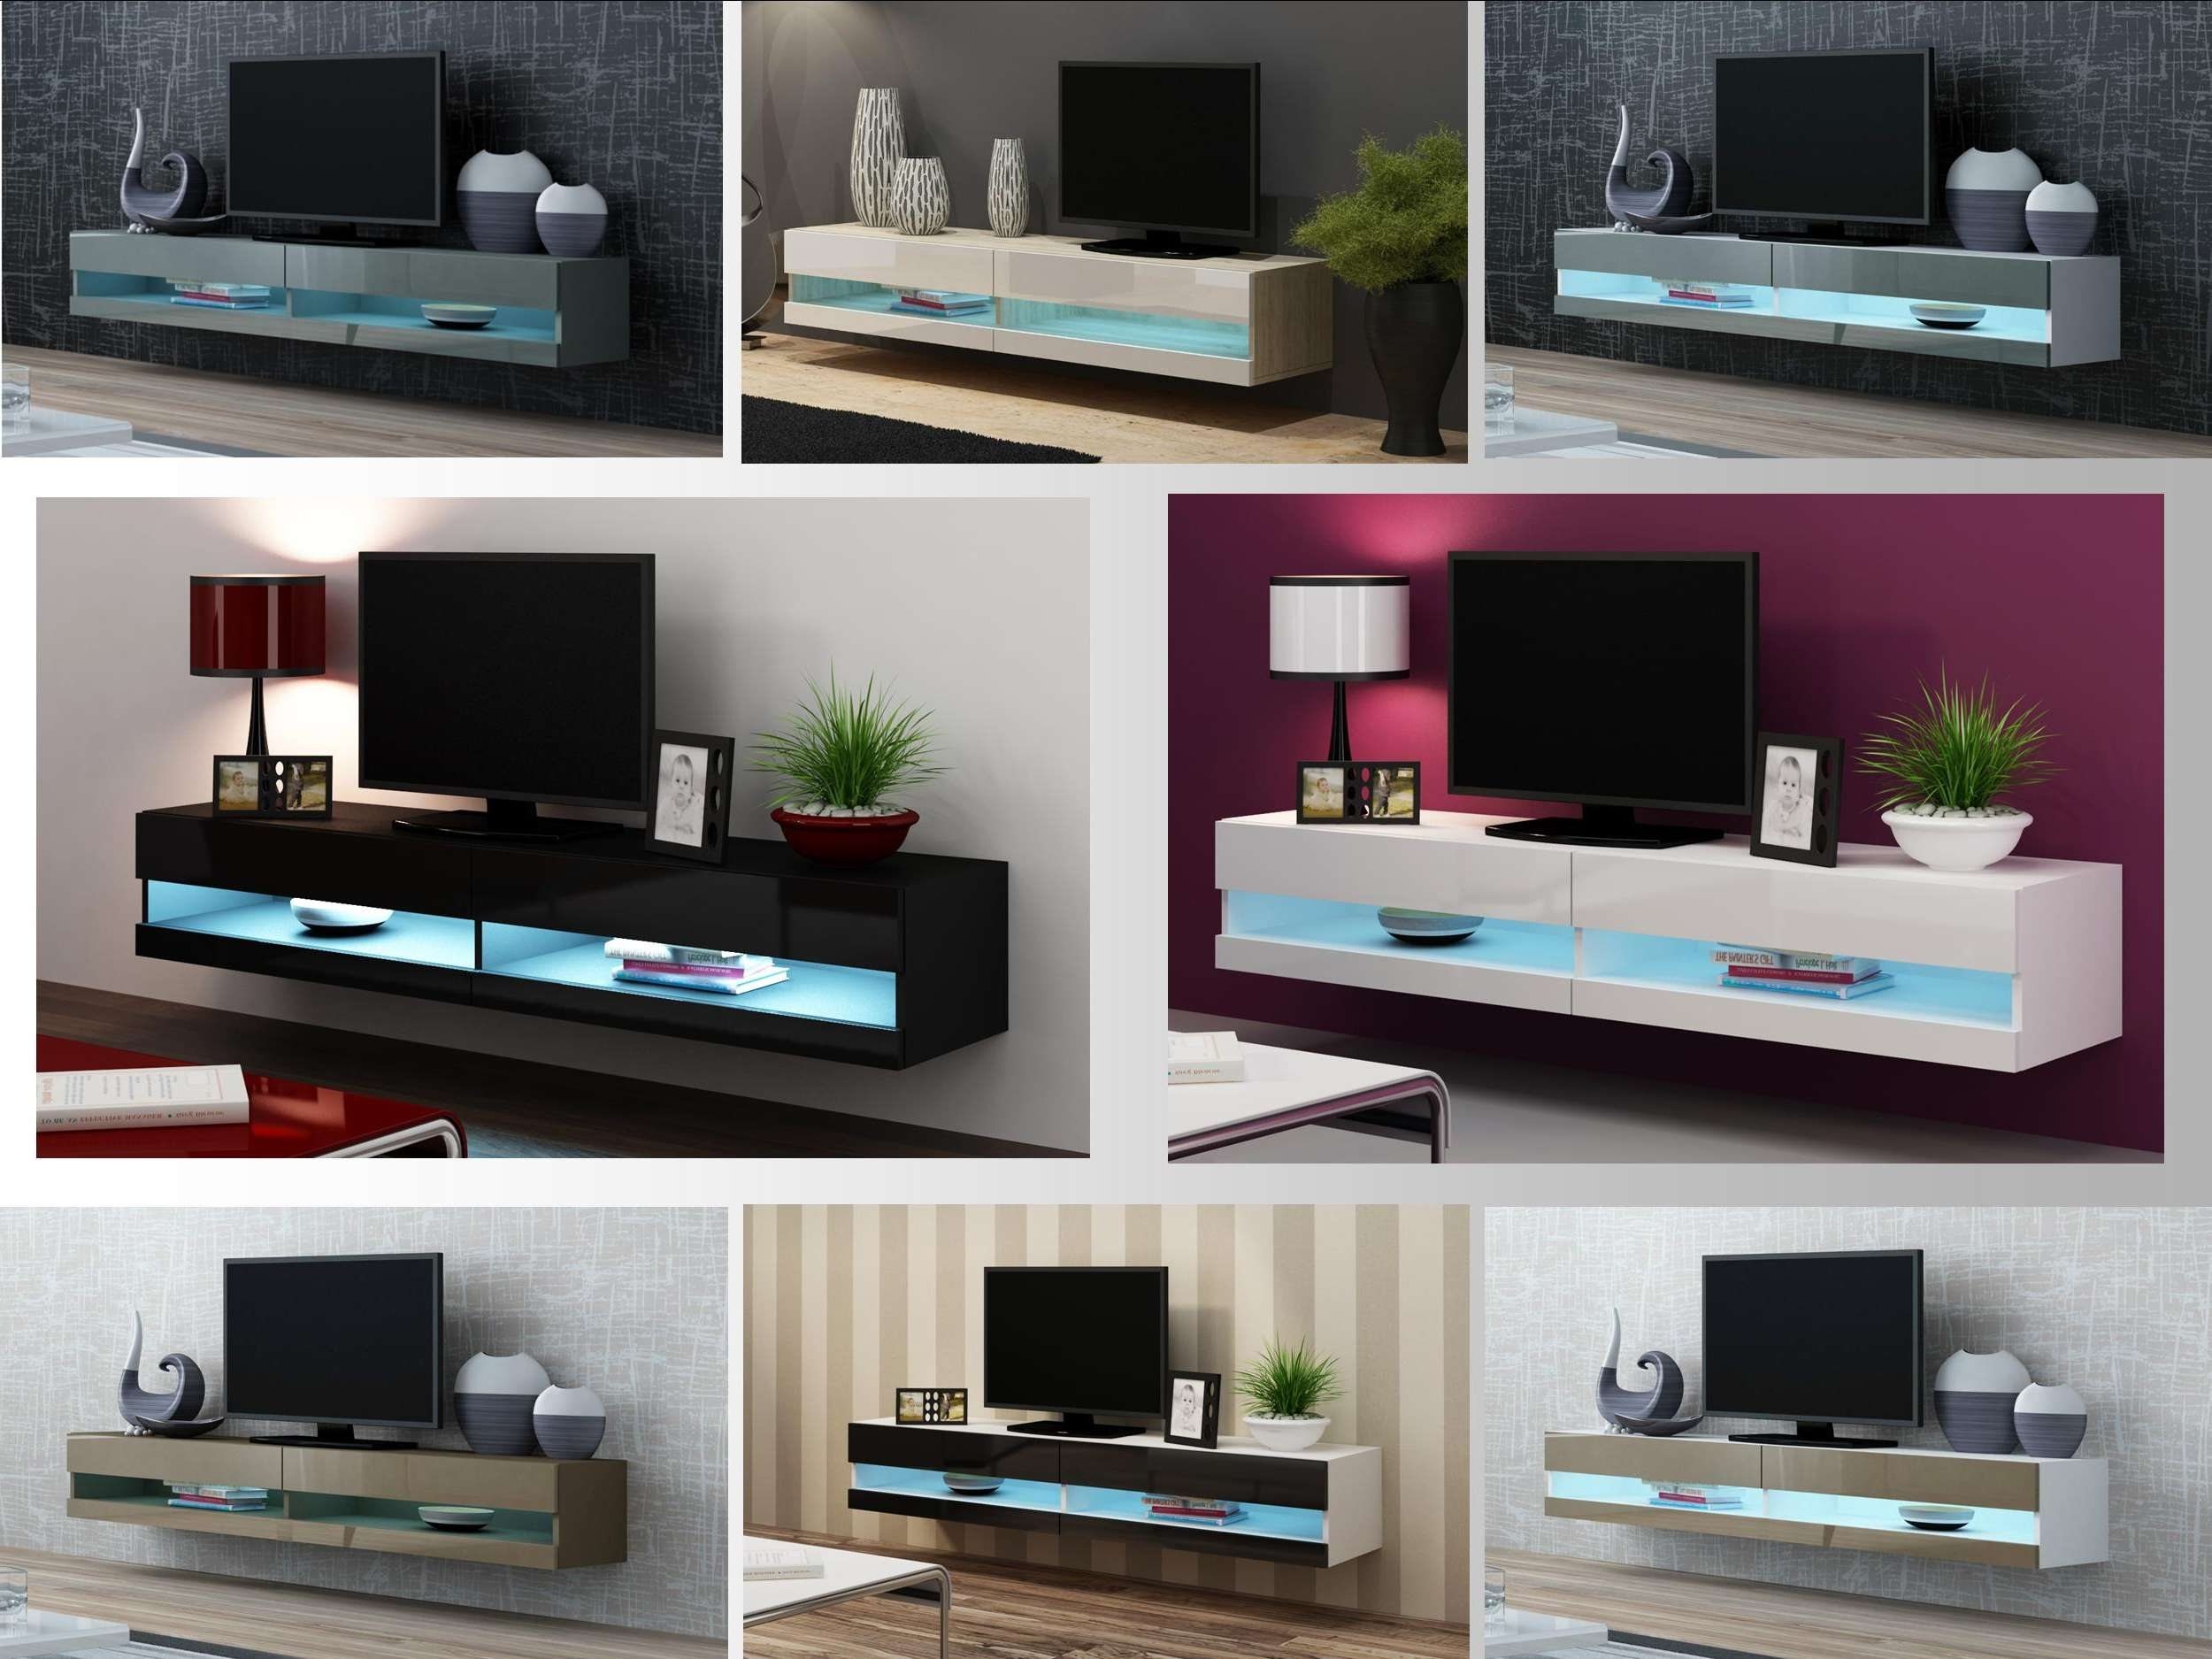 High Gloss Tv Stand Cabinet With Led Lights | Entertainment Throughout Gloss Tv Stands (View 7 of 15)